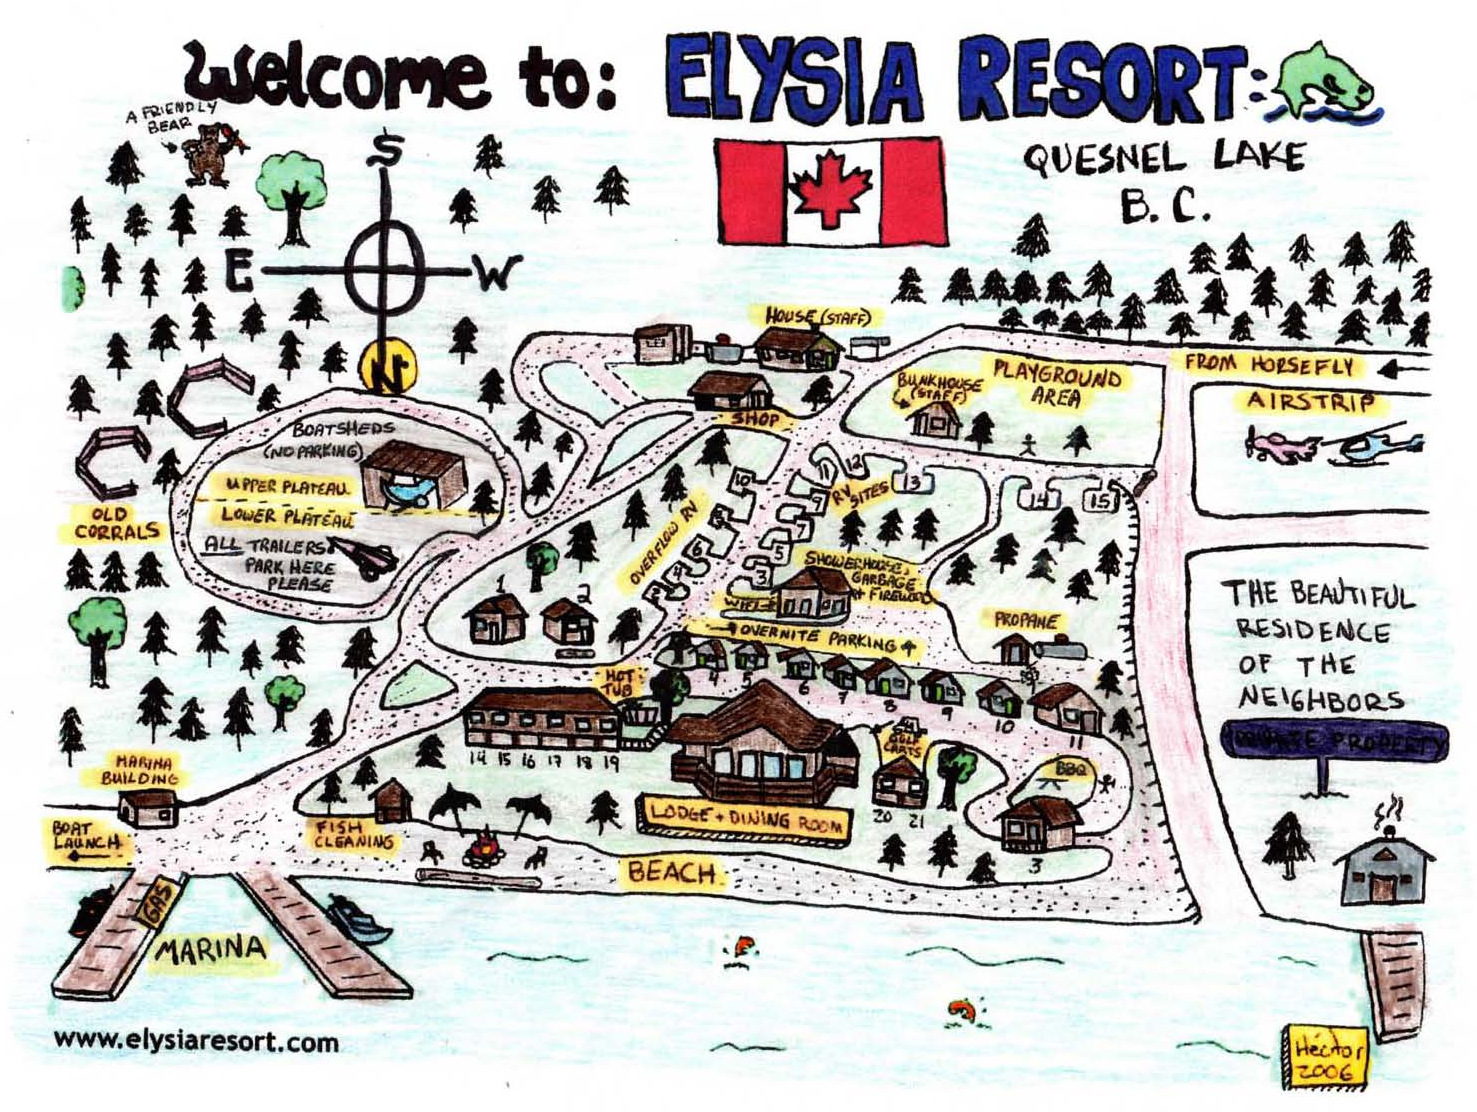 Lodging and Elysia Resort Map